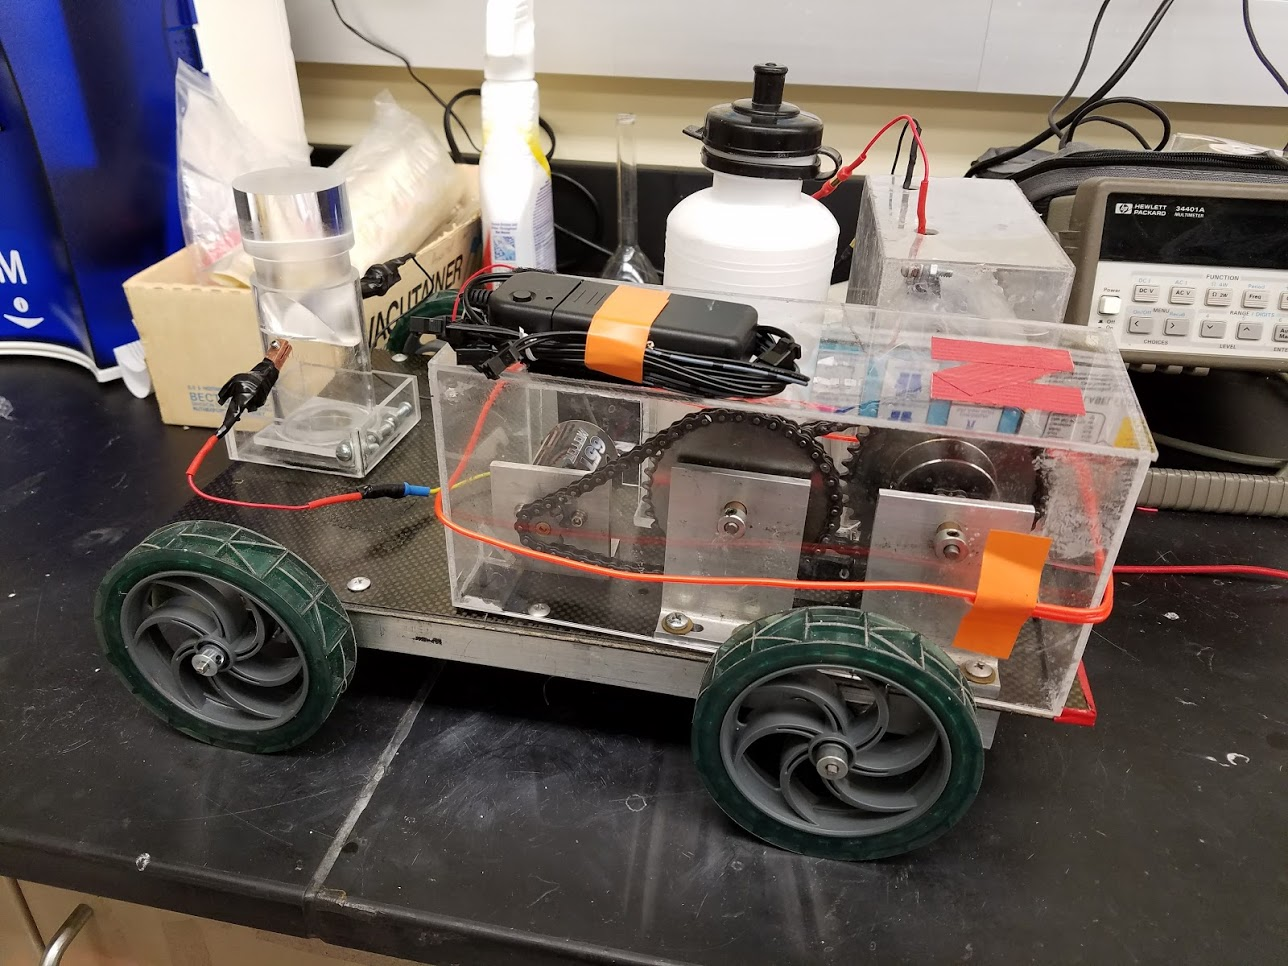 Completed car built in laboratory